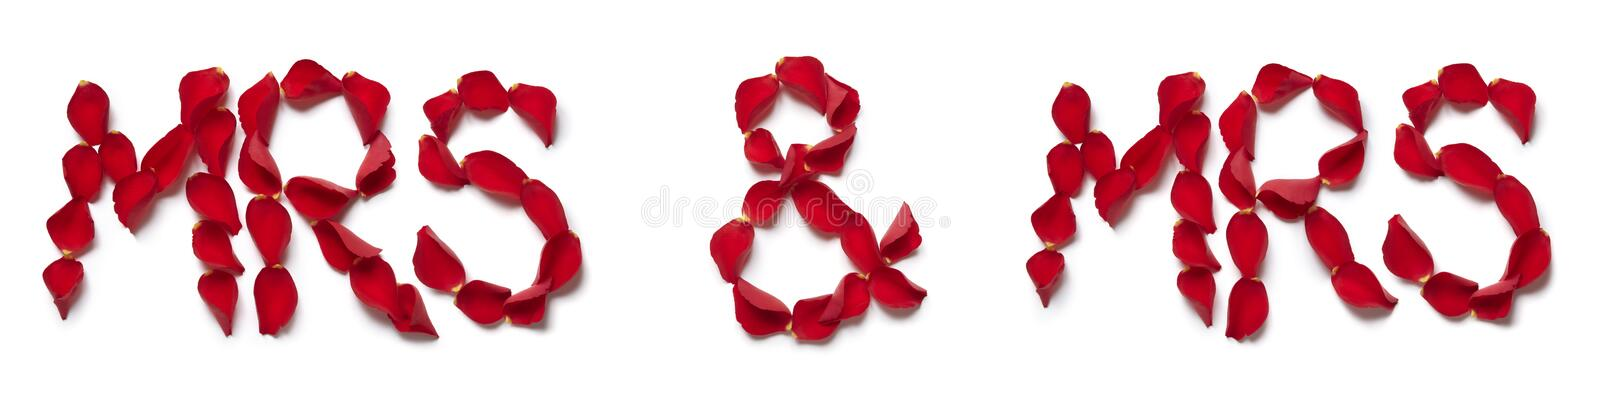 Red rose petals spelling mrs and mrs. On white background stock photography